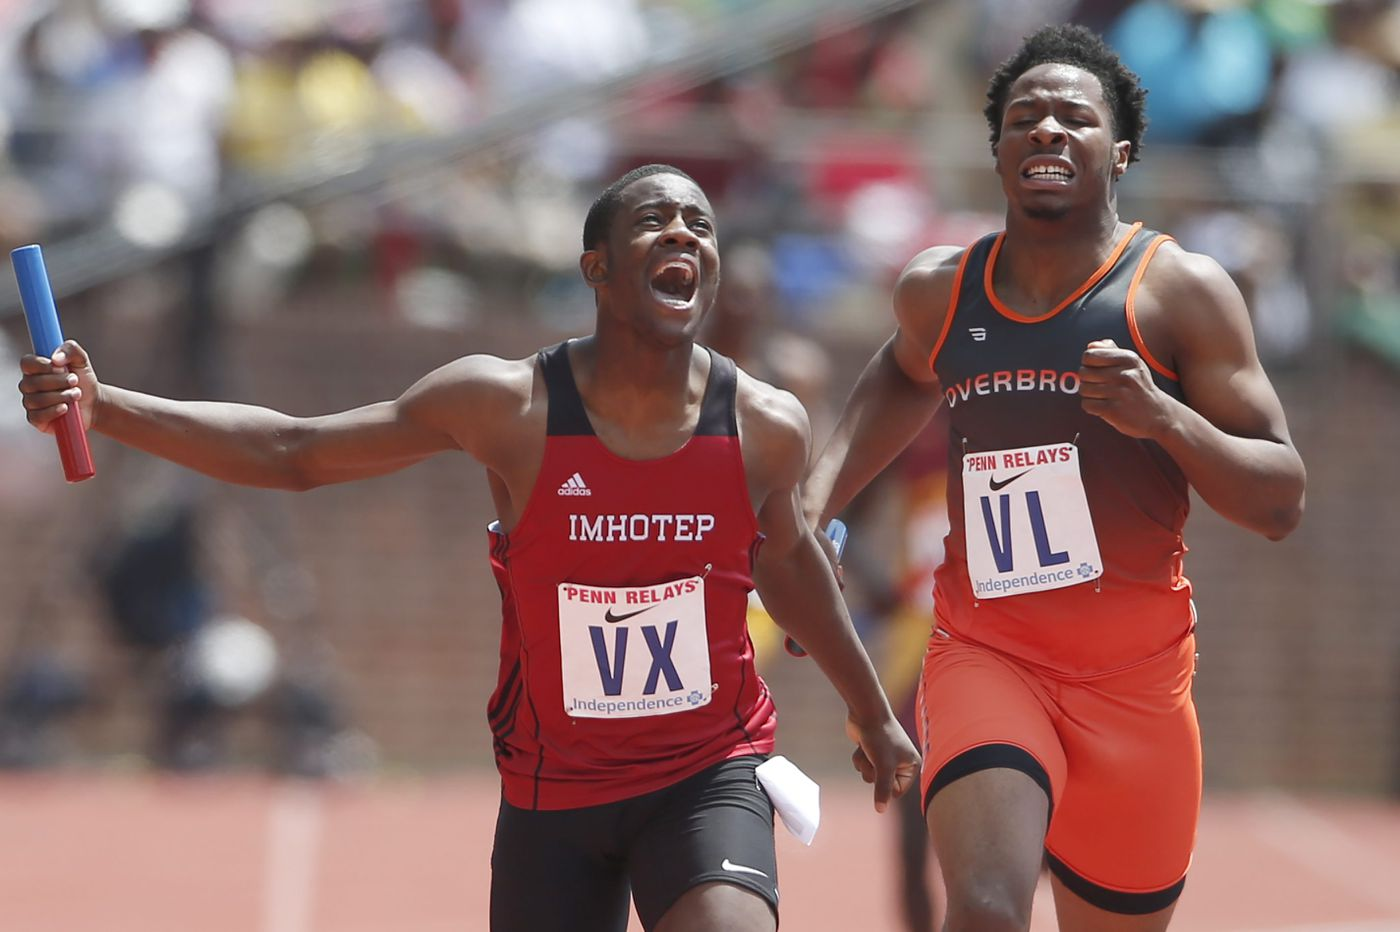 Coaches, friends mourn slain Imhotep track star headed for Penn State